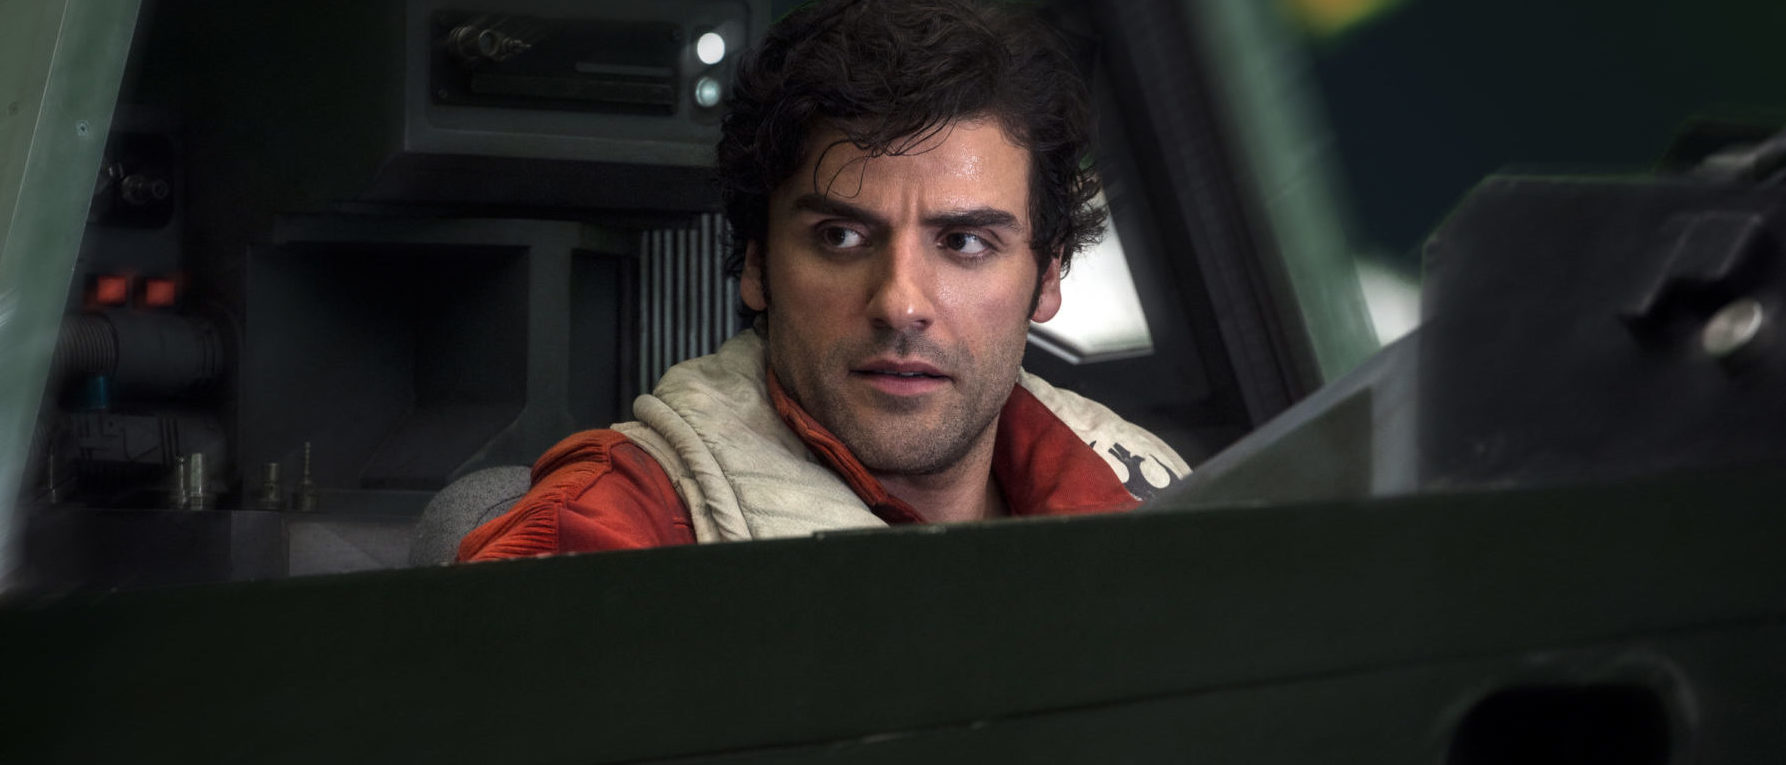 Oscar Isaac as Poe in The Last Jedi Star Wars The Rise of Skywalker